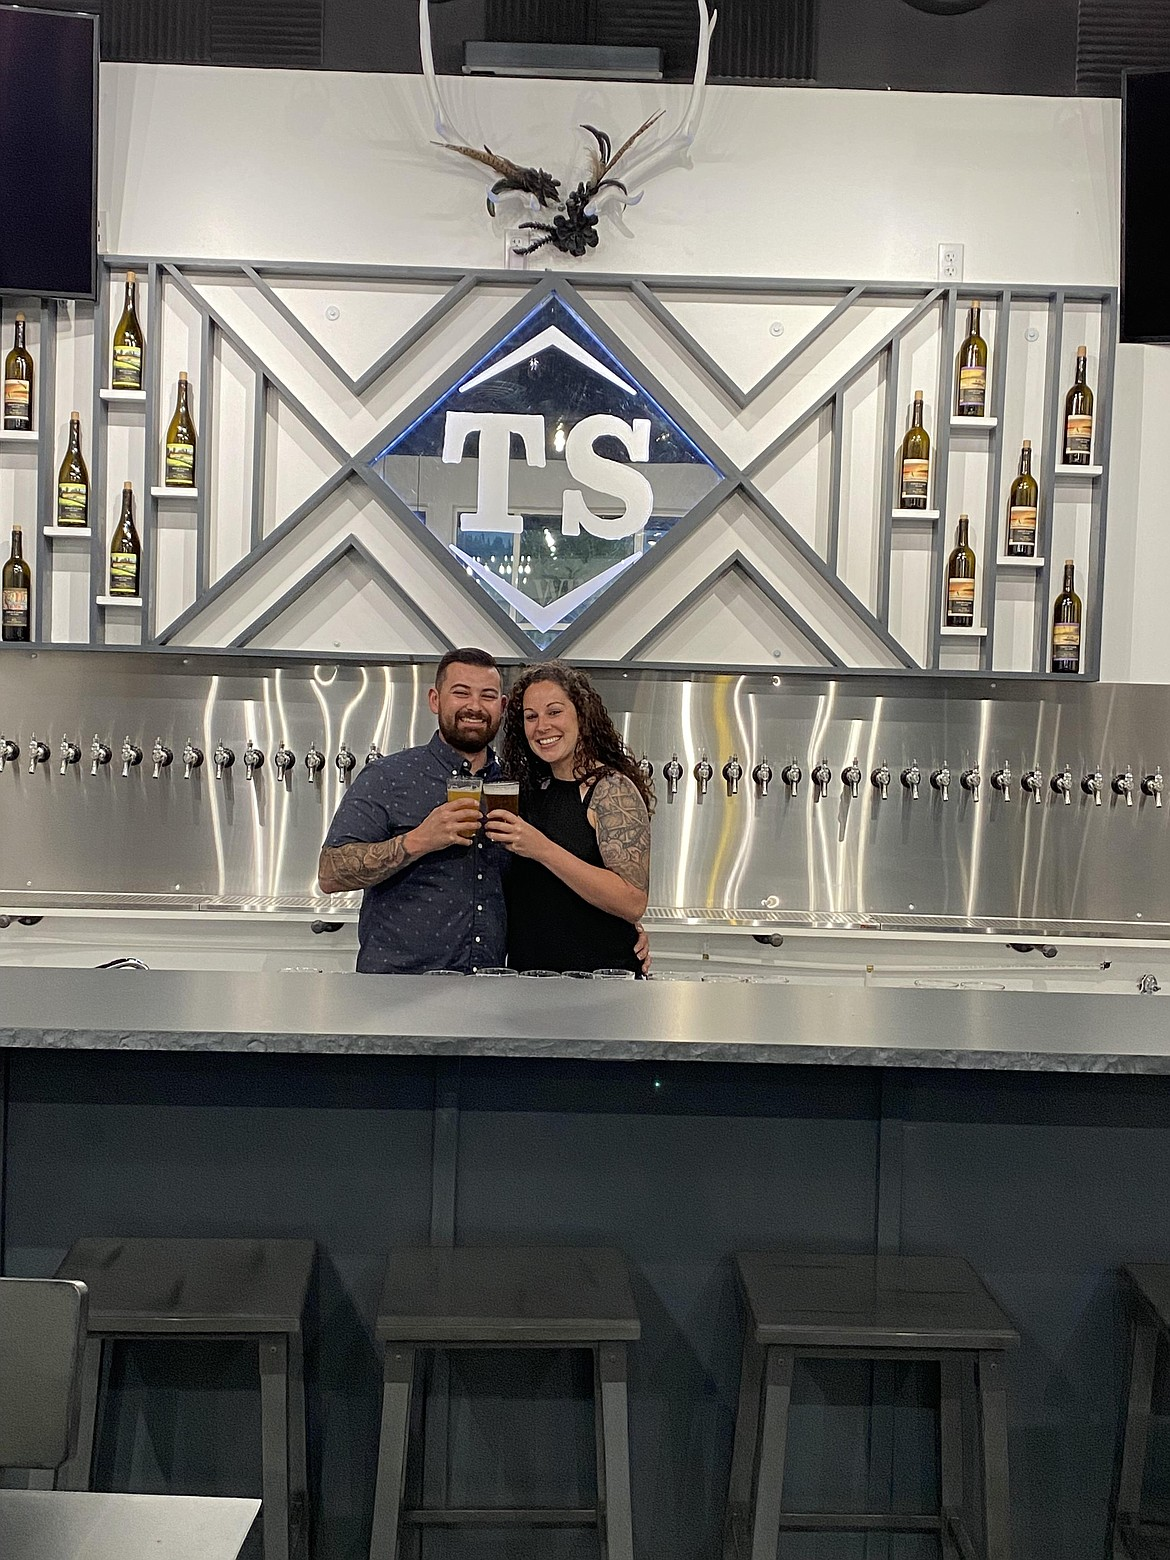 Courtesy photo Owners Nick Giese and Tiffanie Delaney pose inside Twisted Slate Brewery, which has opened at 8160 N. Cornerstone Drive in Hayden.